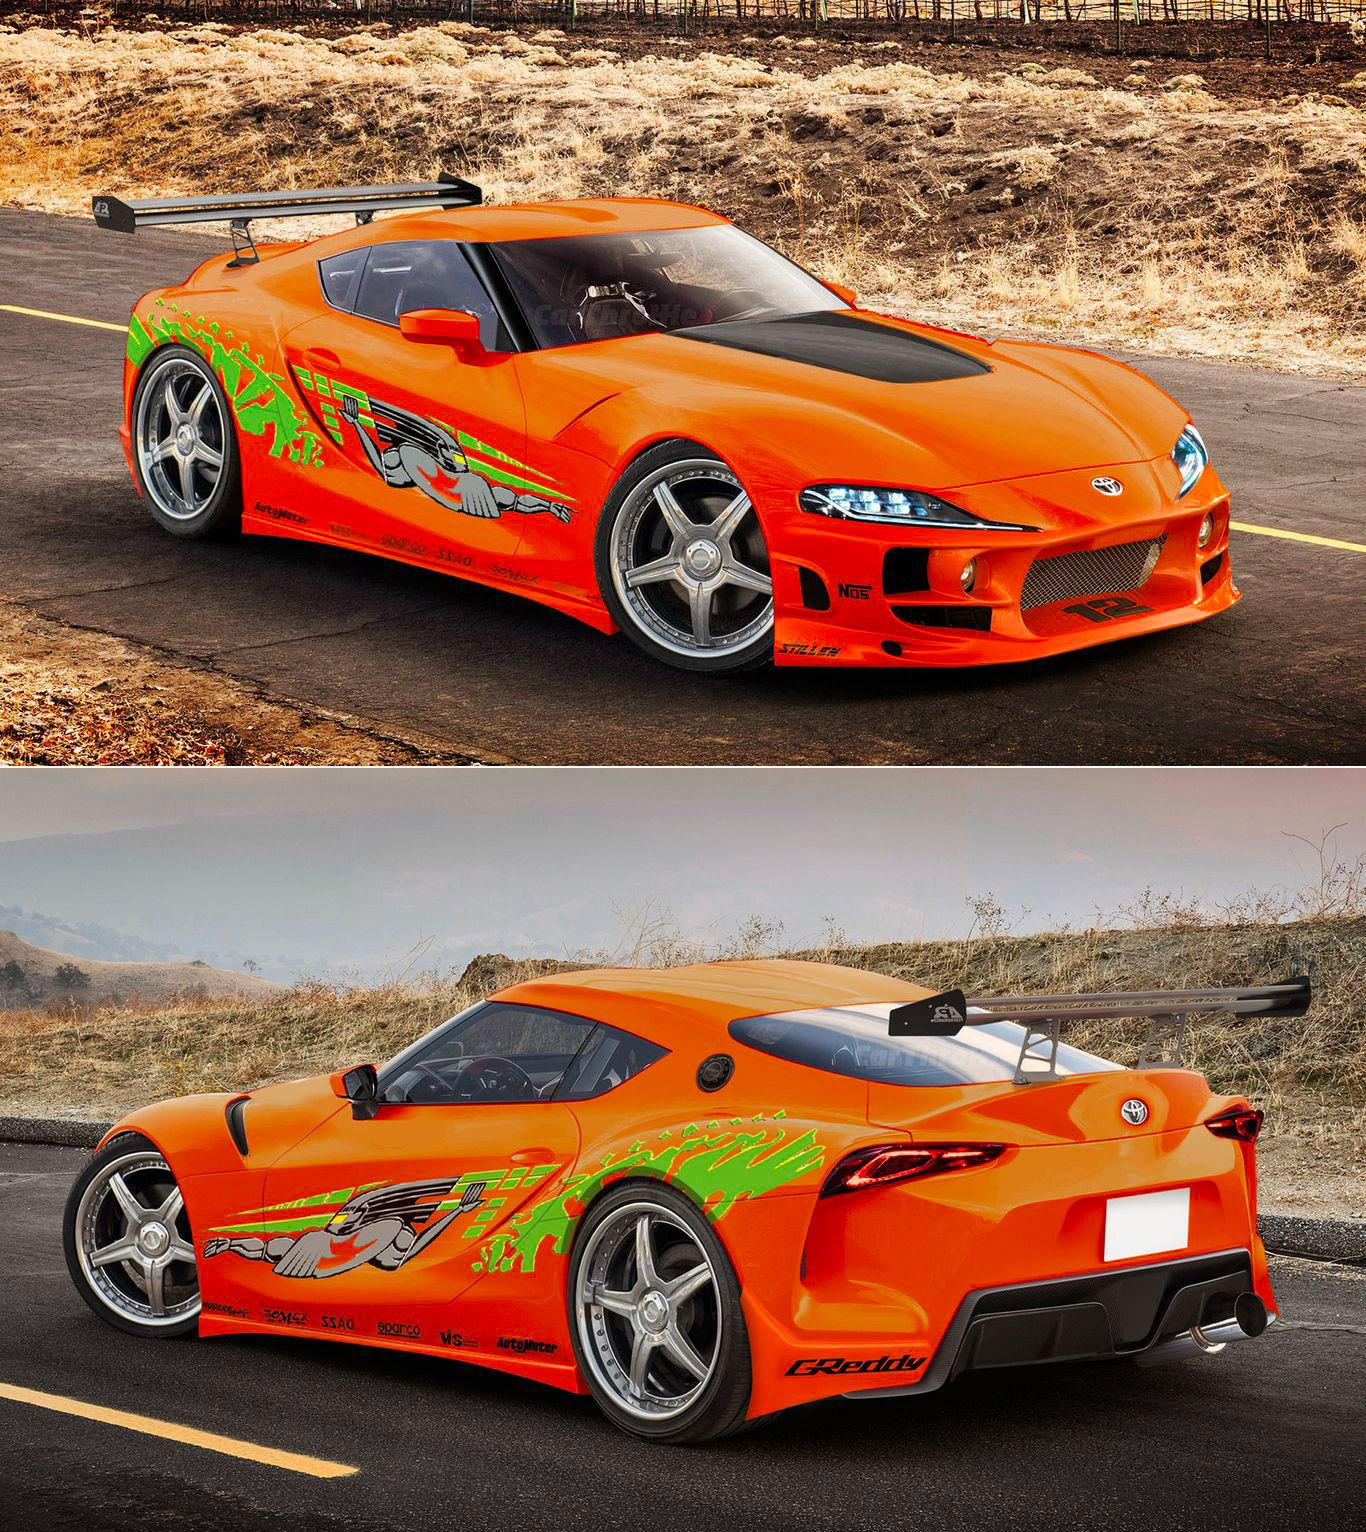 2020 Toyota Supra Spotted Filming Scenes For Fast And Furious 9 Toyota Supra Cars Super Cars